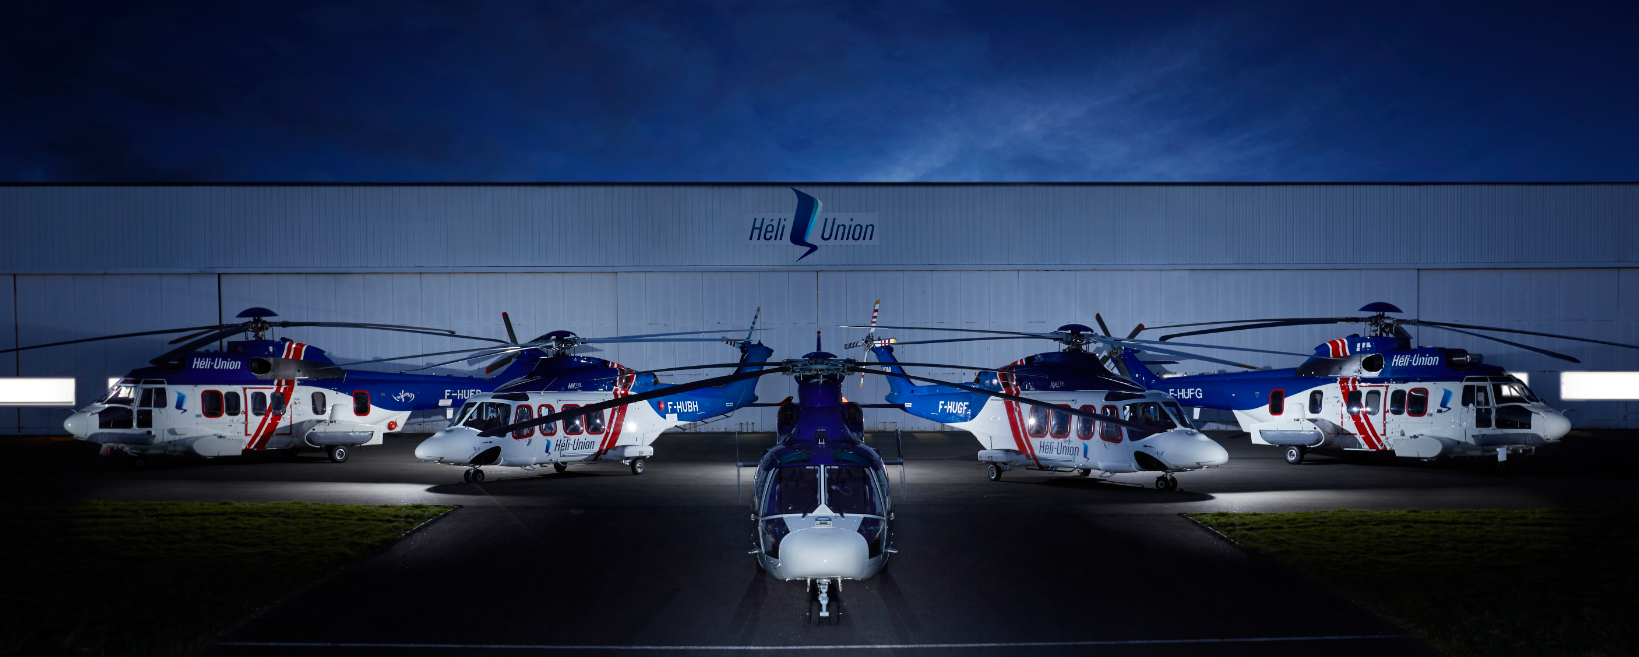 HELI-UNION EXTENDS ITS LEONARDO AND AIRBUS FLEET